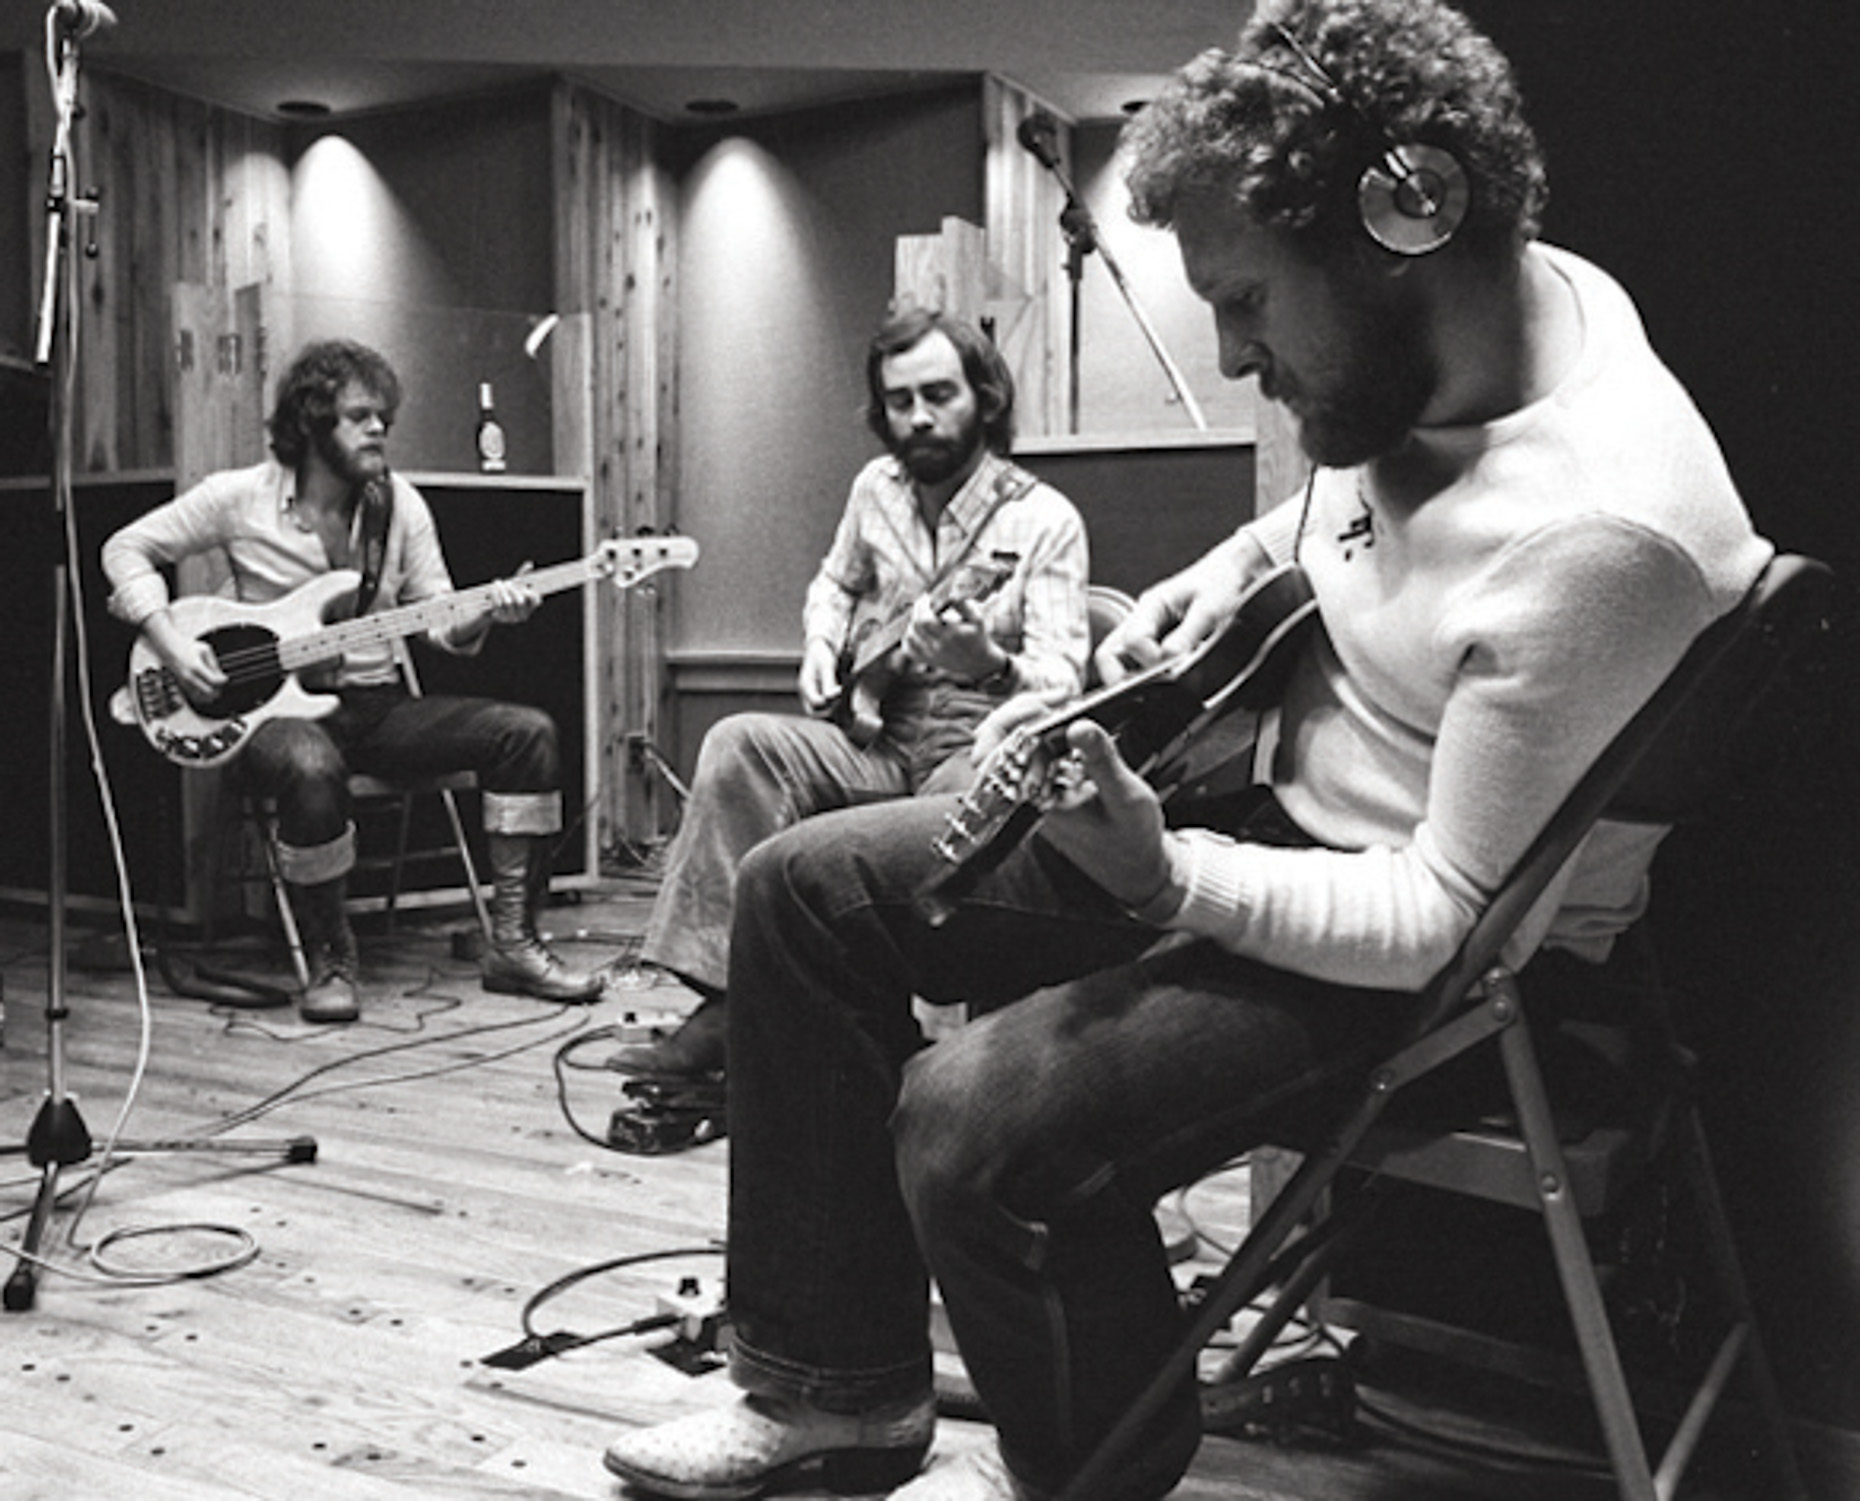 Average White Band in studio, 1970s [Lisa Tanner]_1